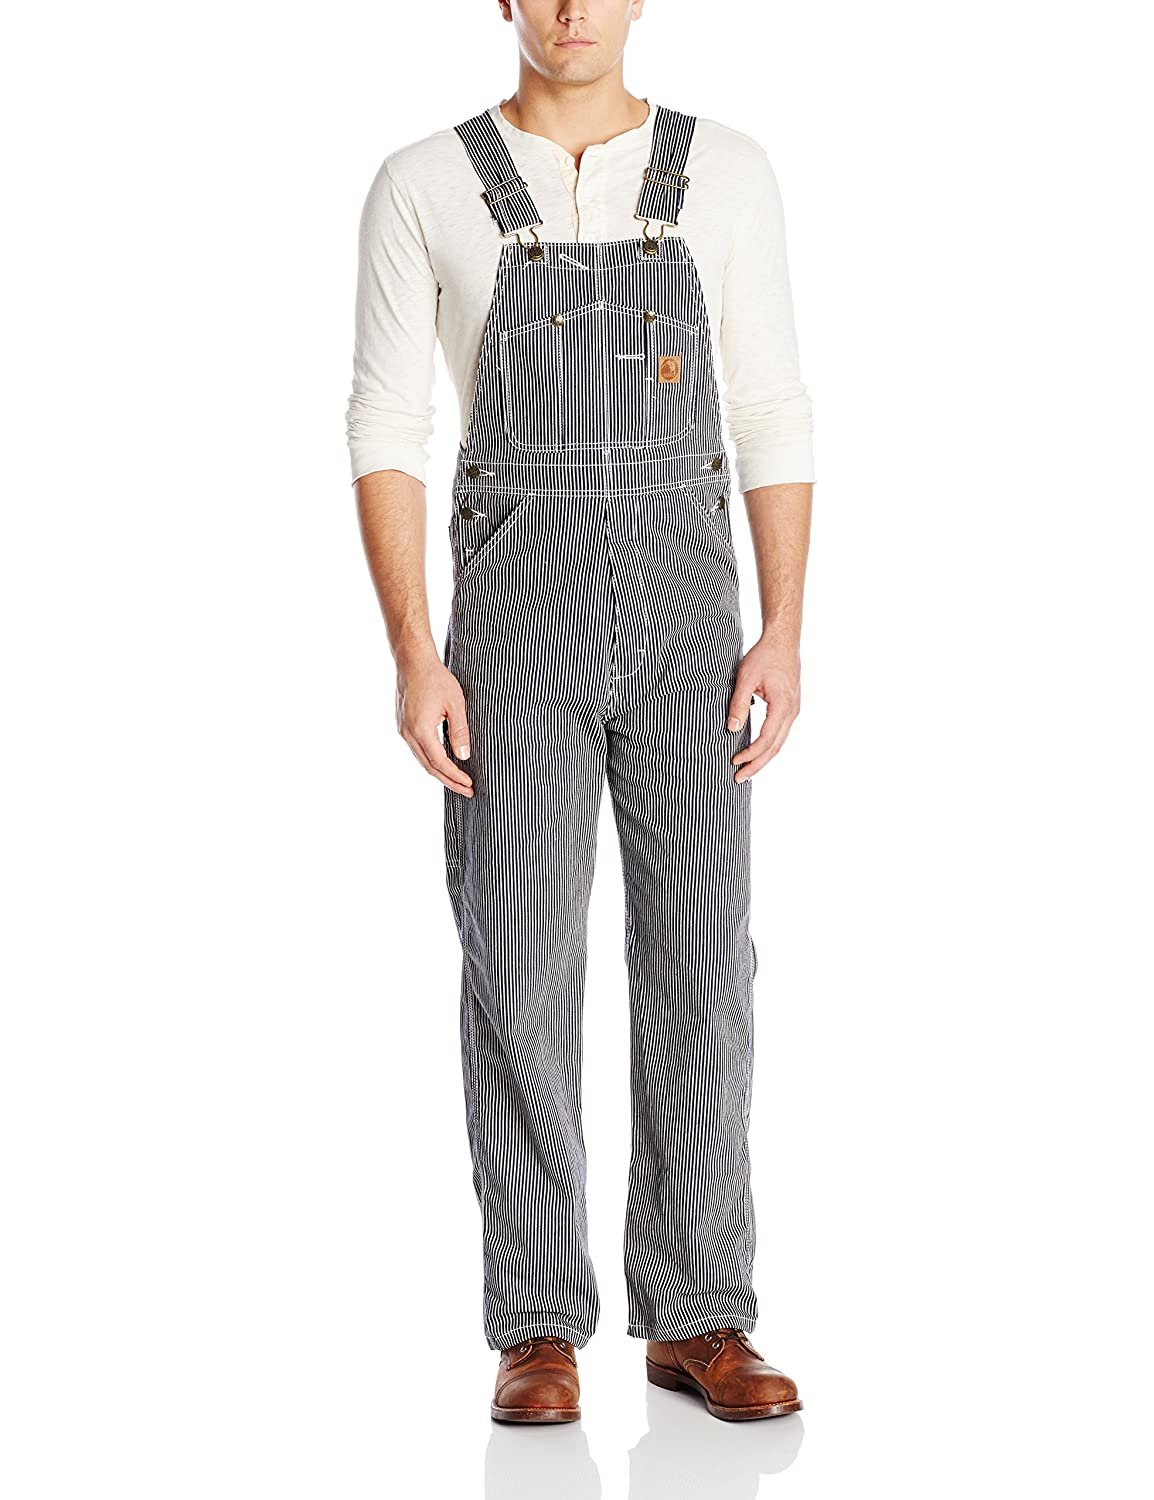 1910s Men's Working Class Clothing Berne Mens Original Unlined Bib Overall $49.99 AT vintagedancer.com